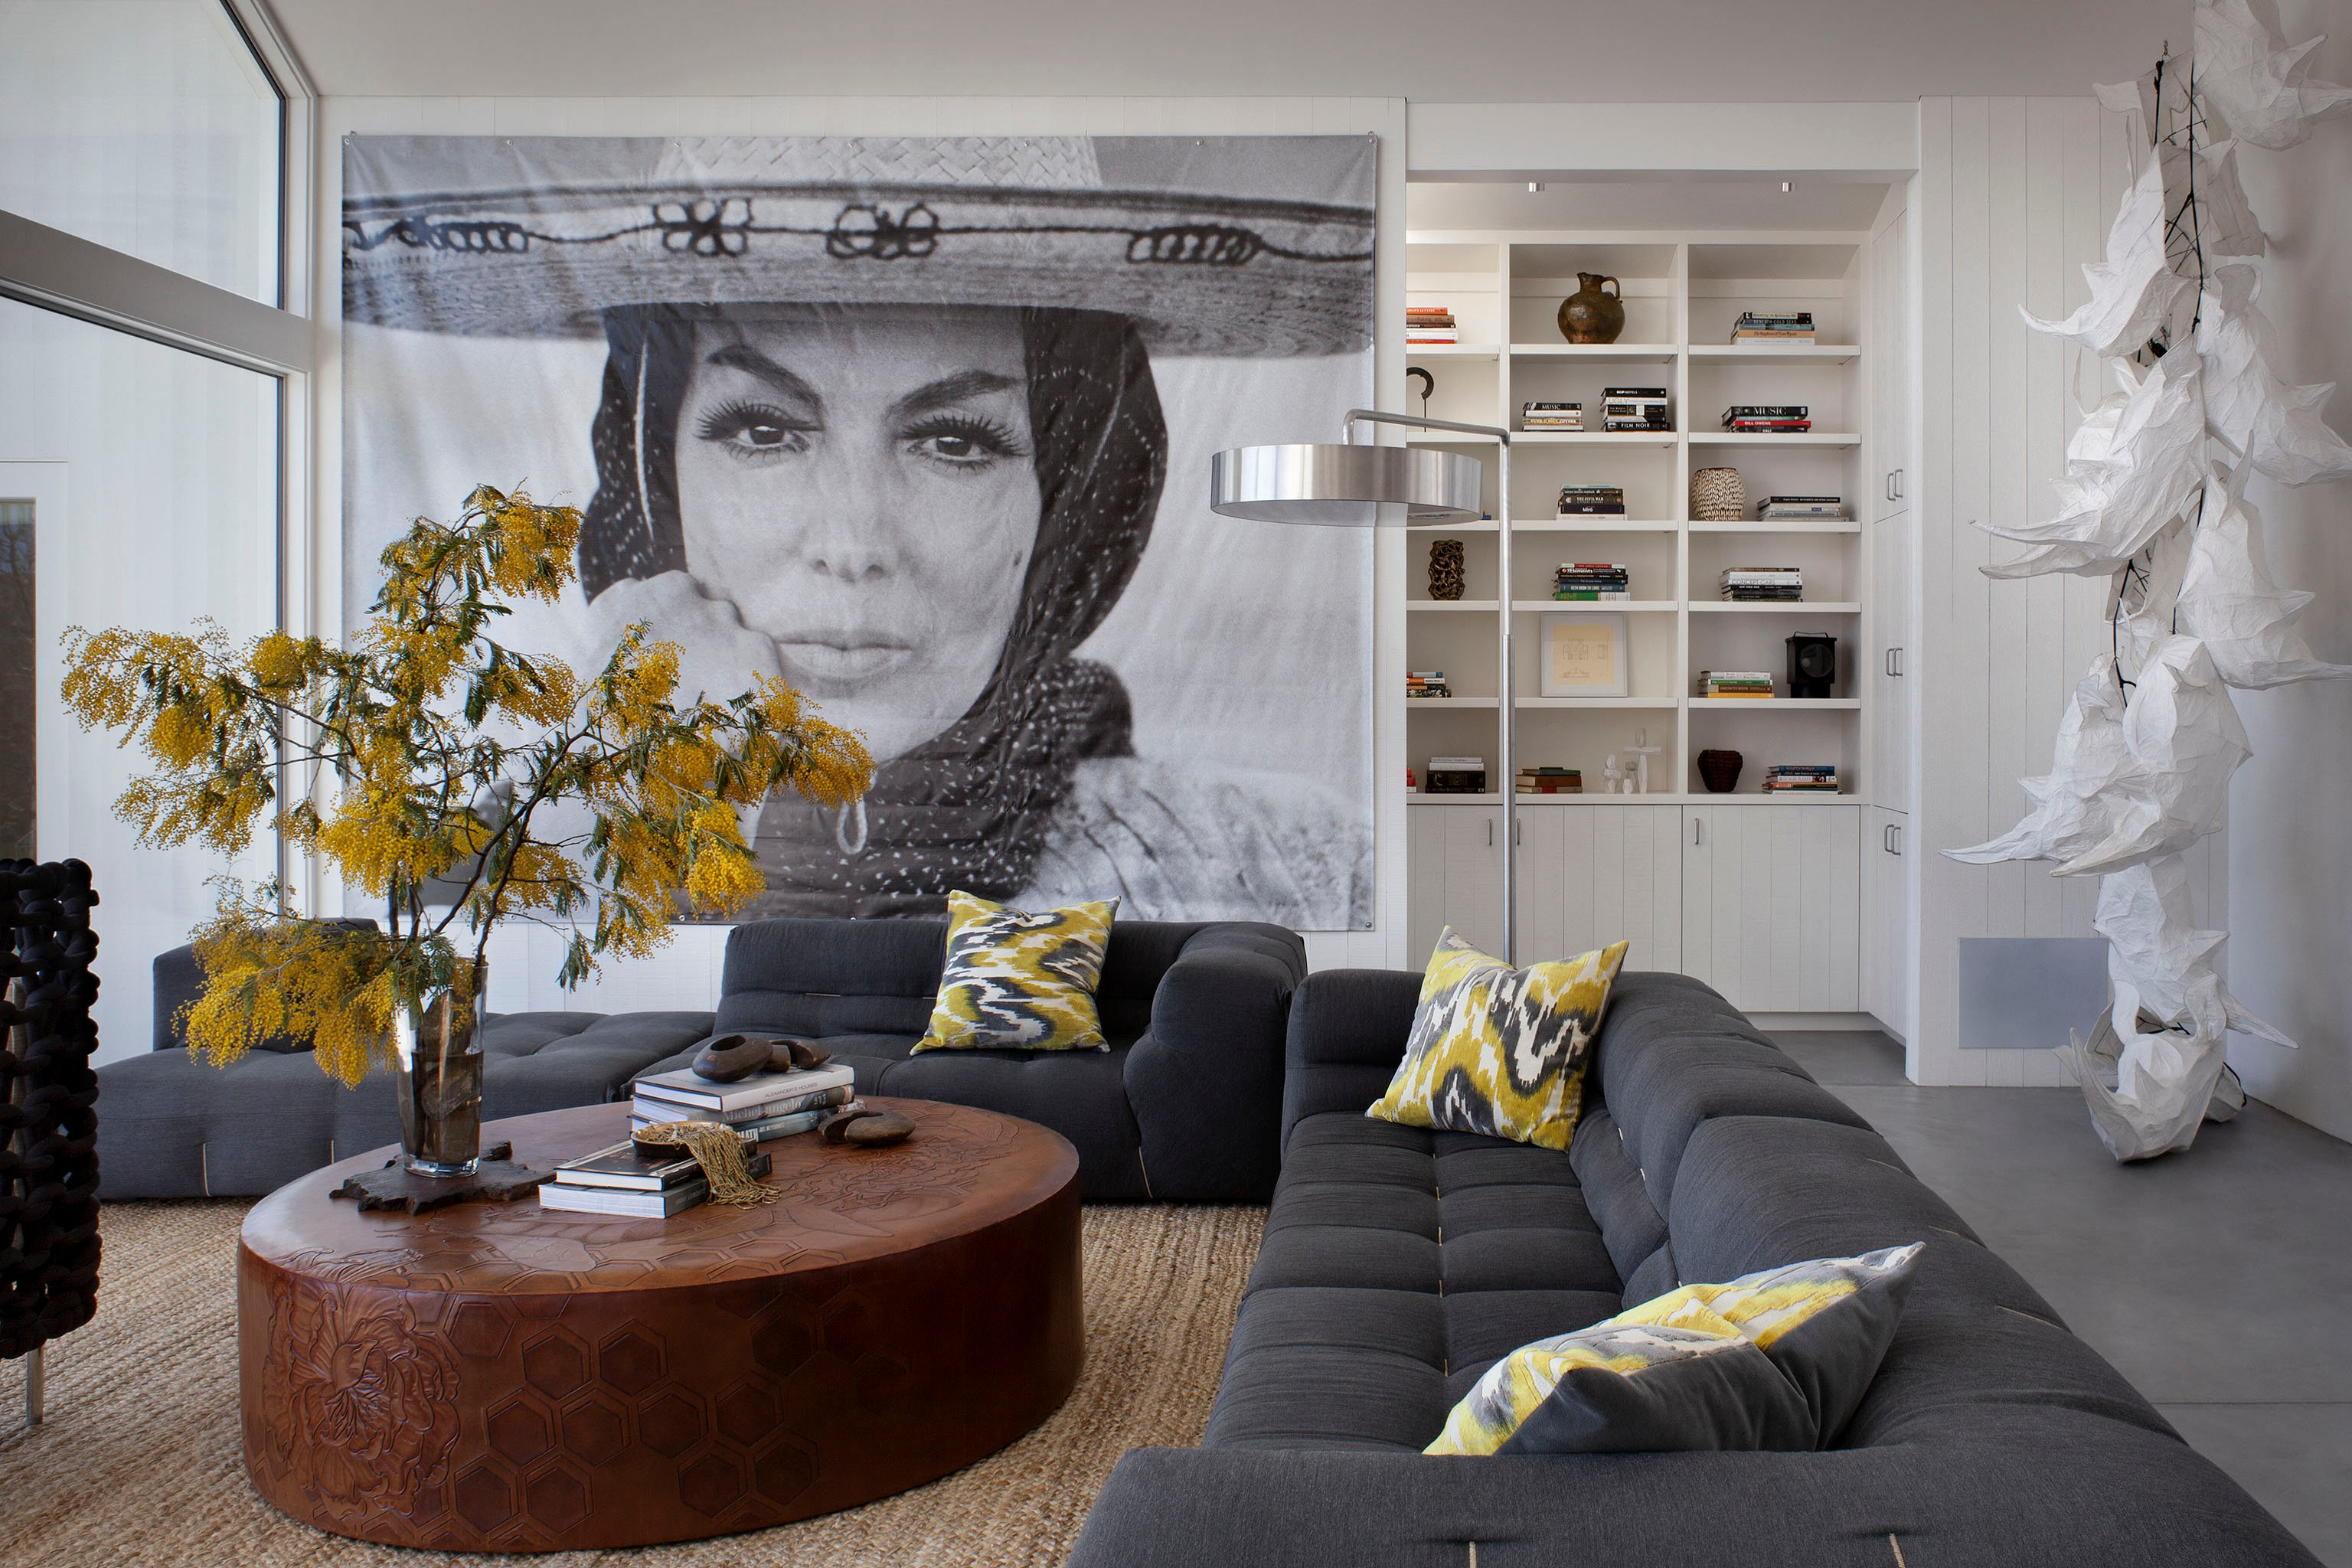 The neutral white and grey hues are countered by bursts of yellow, on the accent pillows and a large plant in the living room. Massive circular leather ottoman coffee table commands attention, while another striking art piece is seen on the far right.